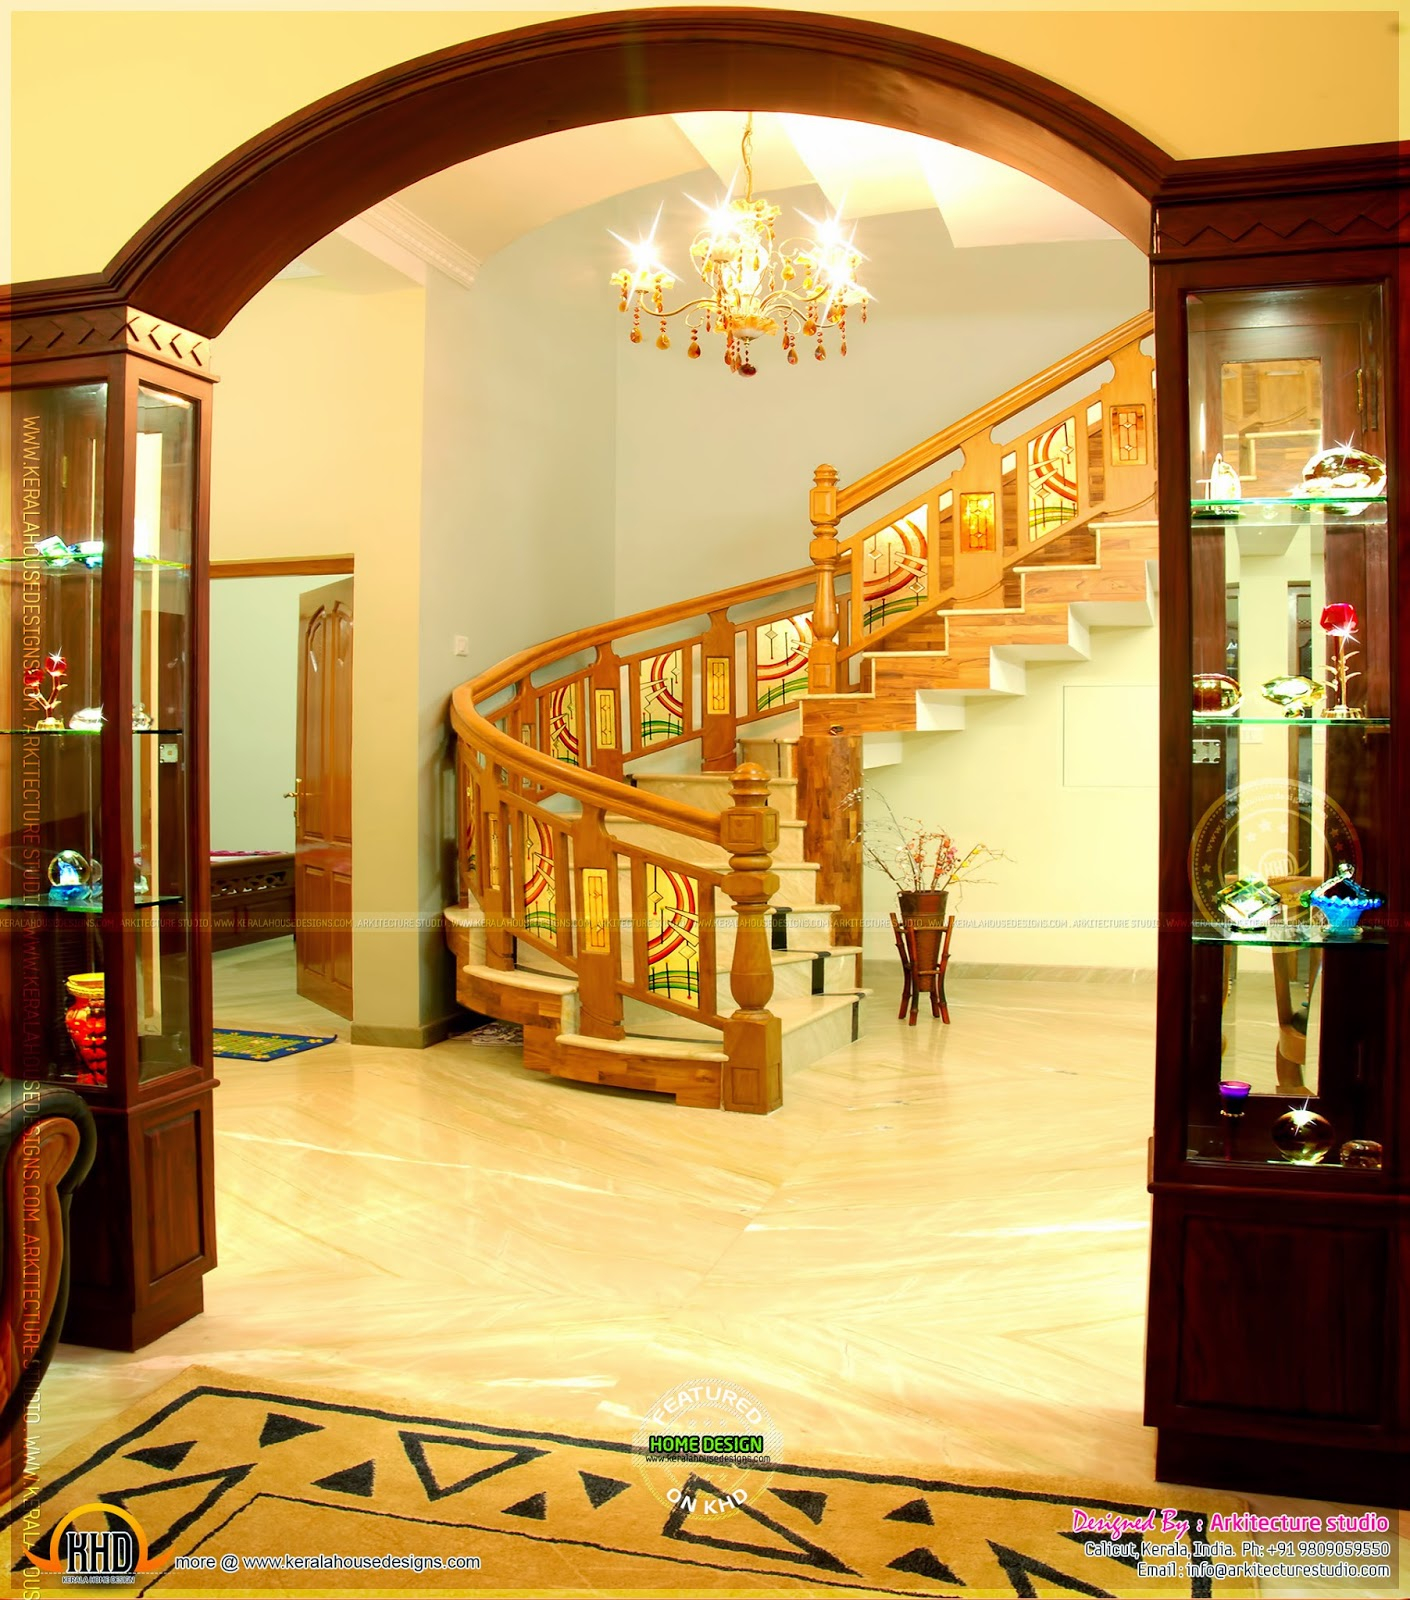 Real house in kerala with interior photos kerala home for Small hall interior design photos india